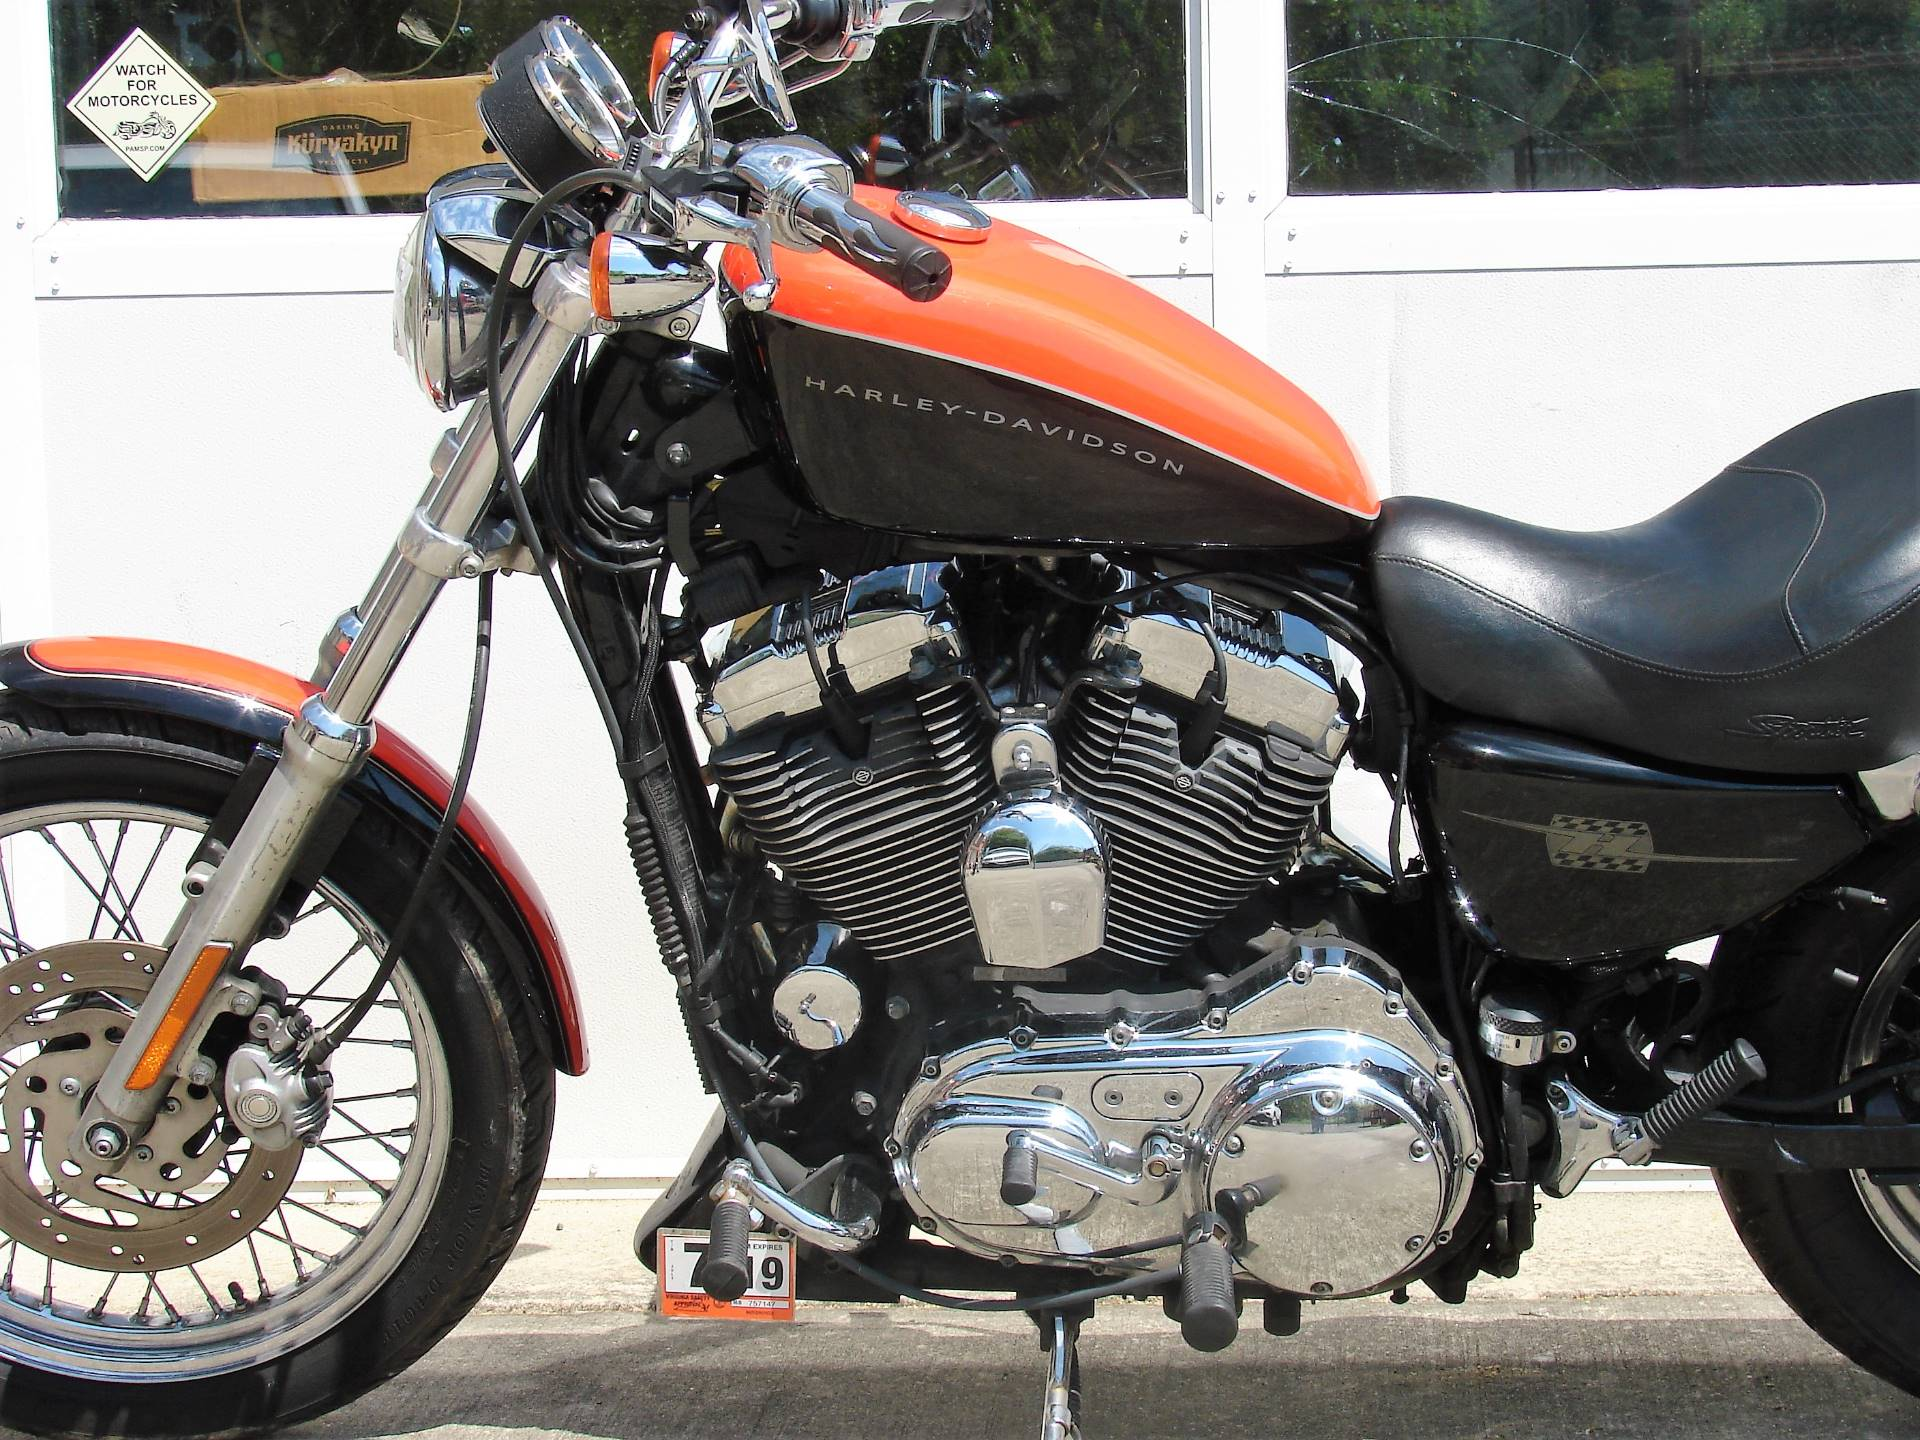 2007 Harley-Davidson 1200 Sportster XL 50  (50th Anniversary Edition) in Williamstown, New Jersey - Photo 14